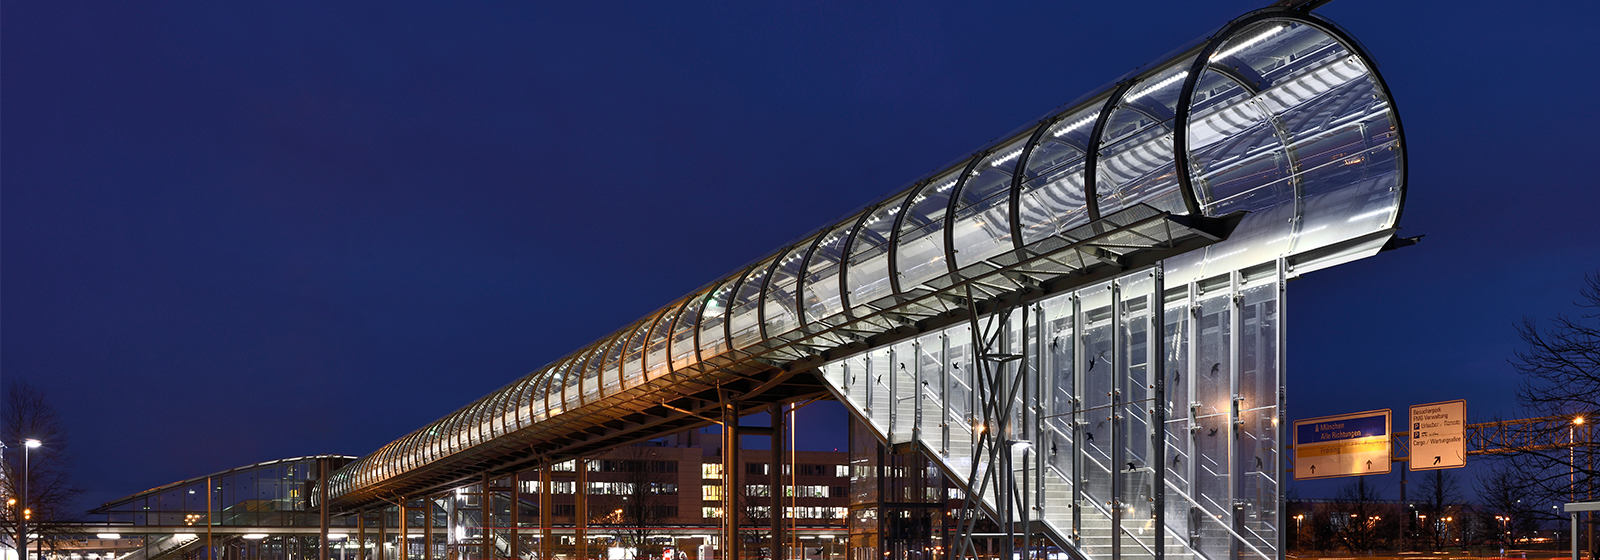 Pedestrian Bridge, Munich Airport